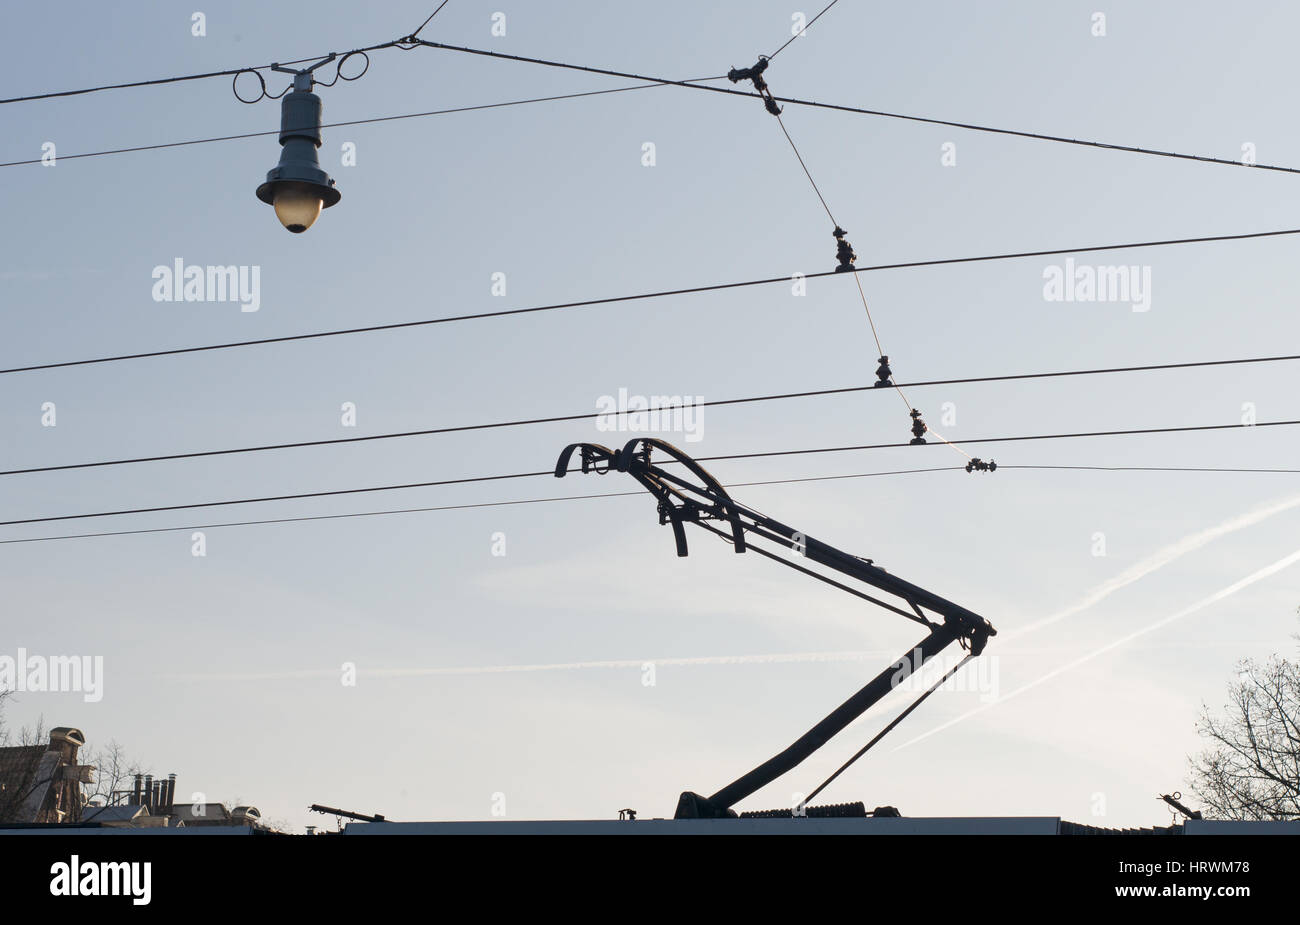 Tram Wire Stock Photos & Tram Wire Stock Images - Alamy